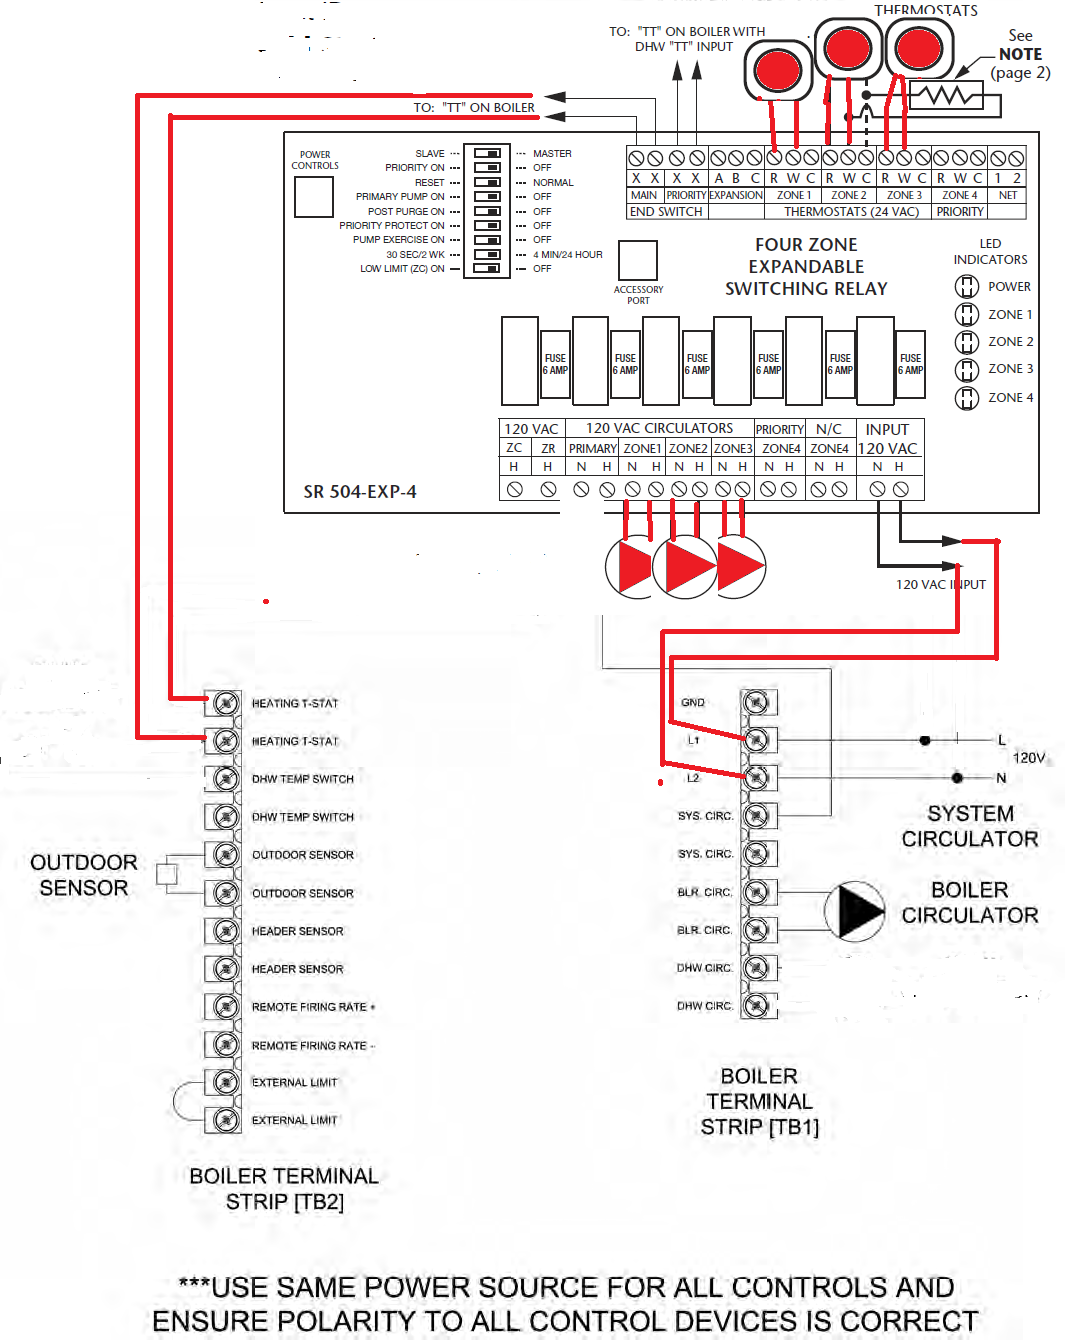 Taco Sr504 4 Wiring Diagram 27 Images Sr502 2 Zone 60db012cb60e7001f42de5219e701e Terms In A Hot Water Heating System And Help Needed On Control